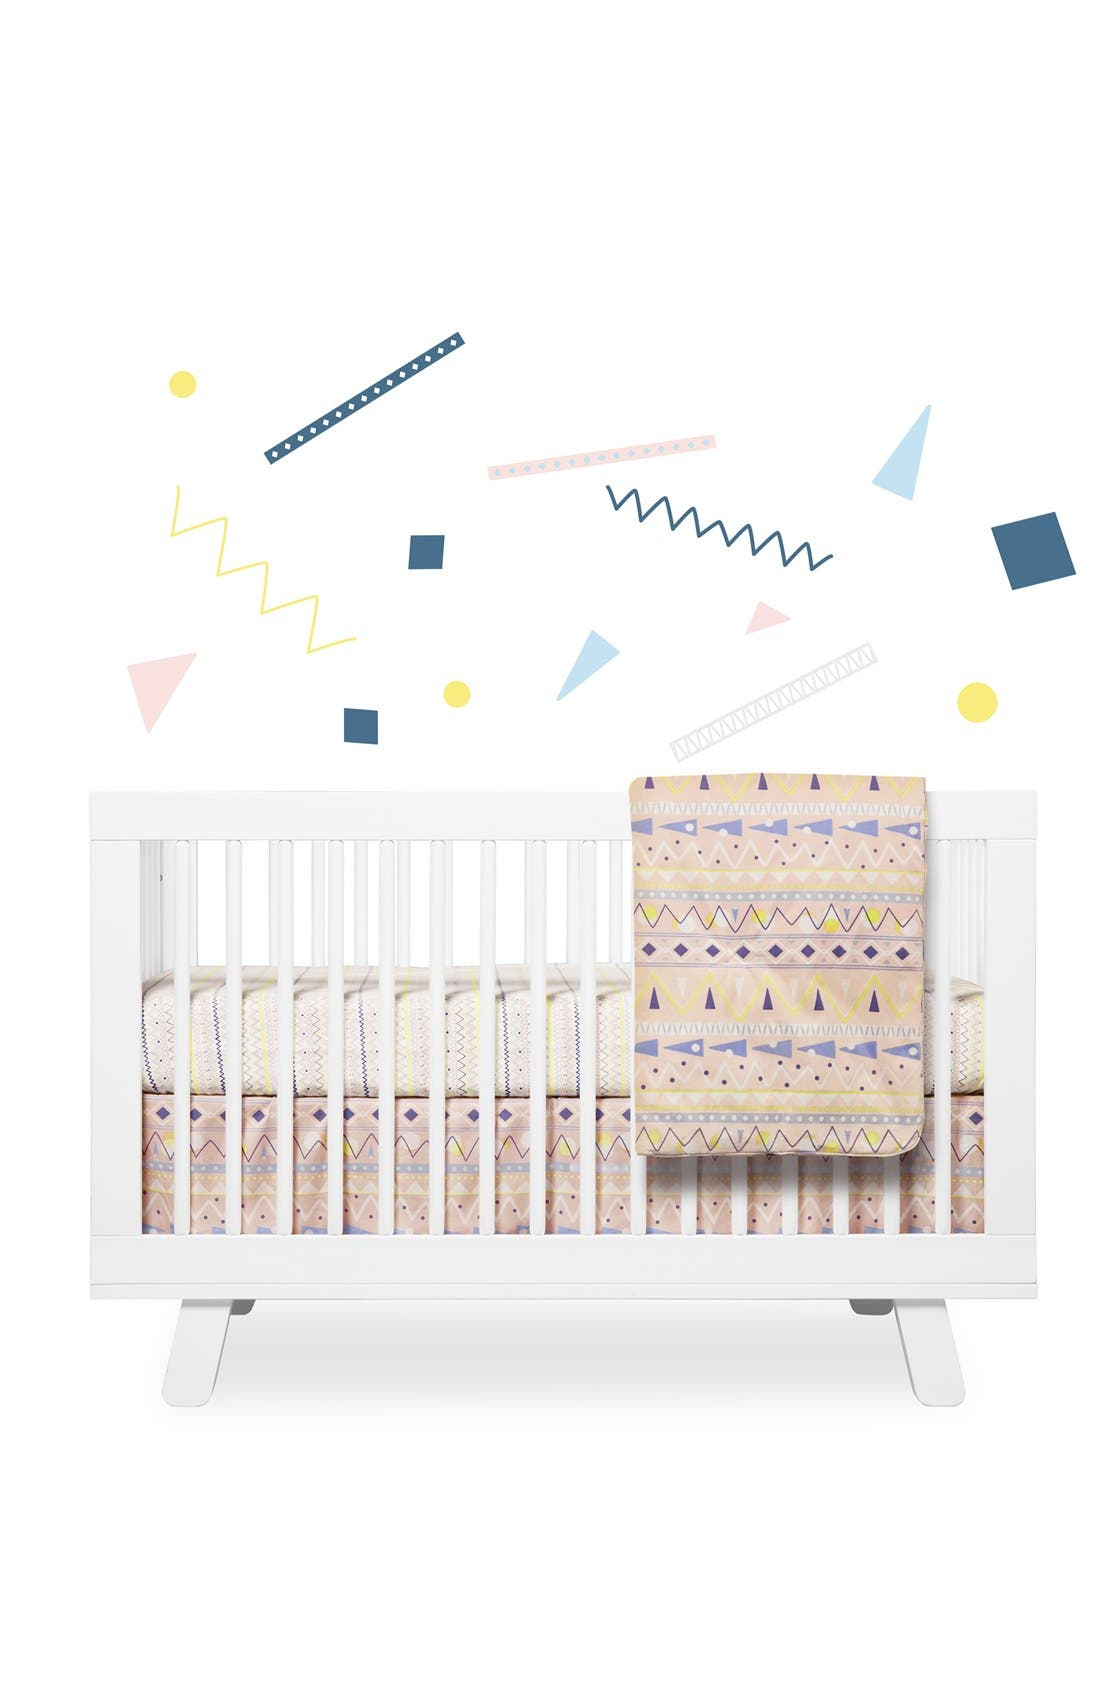 BABYLETTO 'Desert' Crib Sheet, Crib Skirt, Changing Pad Cover, Play Blanket, Stroller Blanket & Wall Decals, Main, color, OFF WHITE